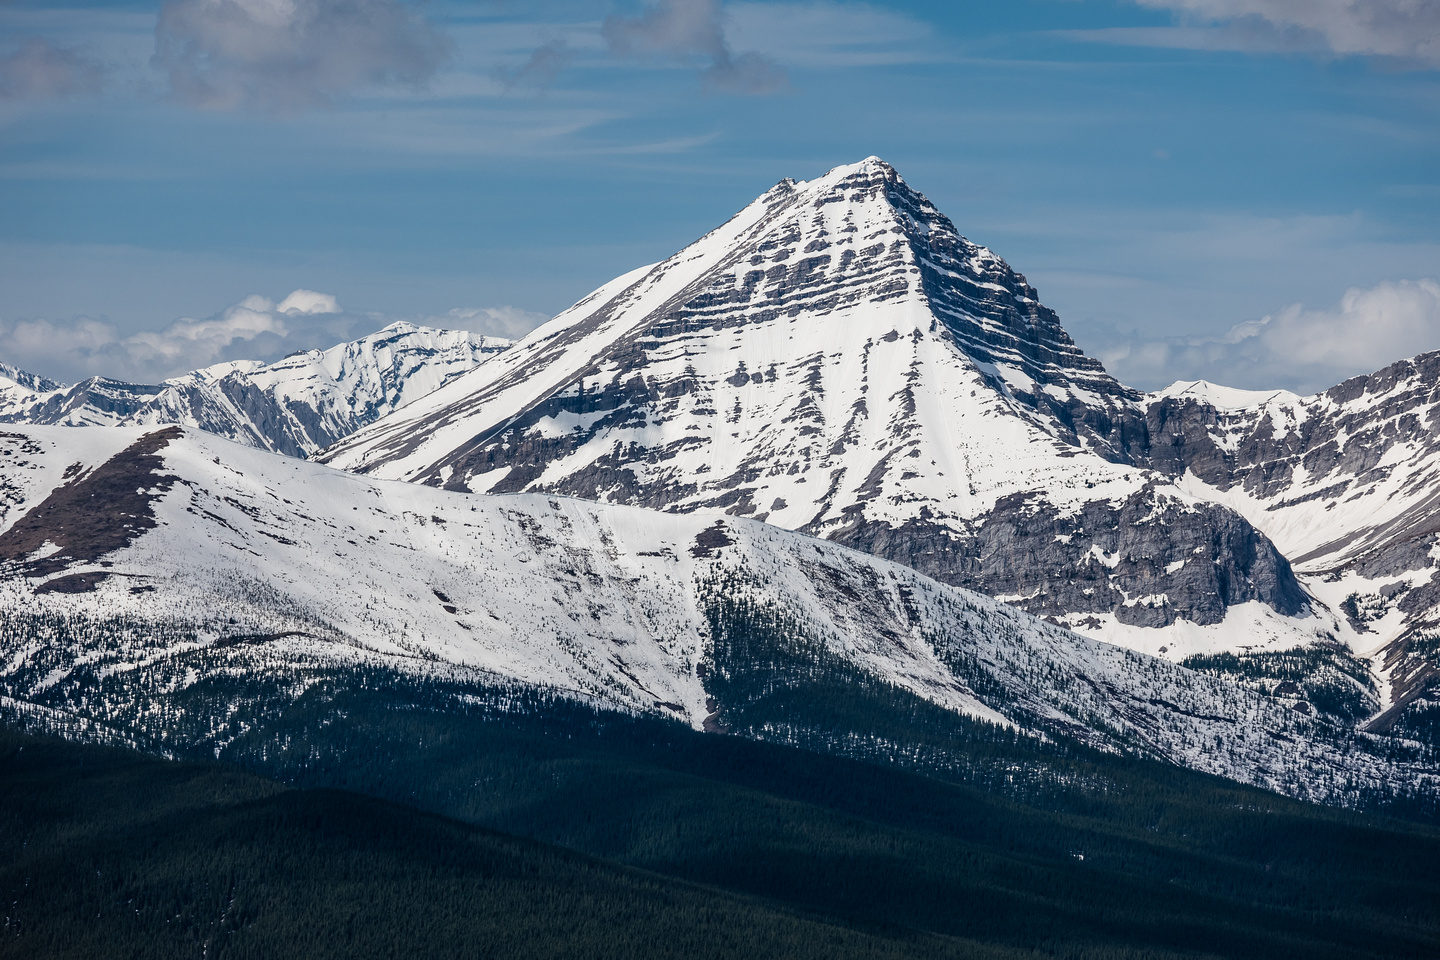 Mount McPhail is easy and quick from a camp at the McPhail Creek headwall. I blasted up and down it in 3 hours and enjoyed the views from the summit immensely.